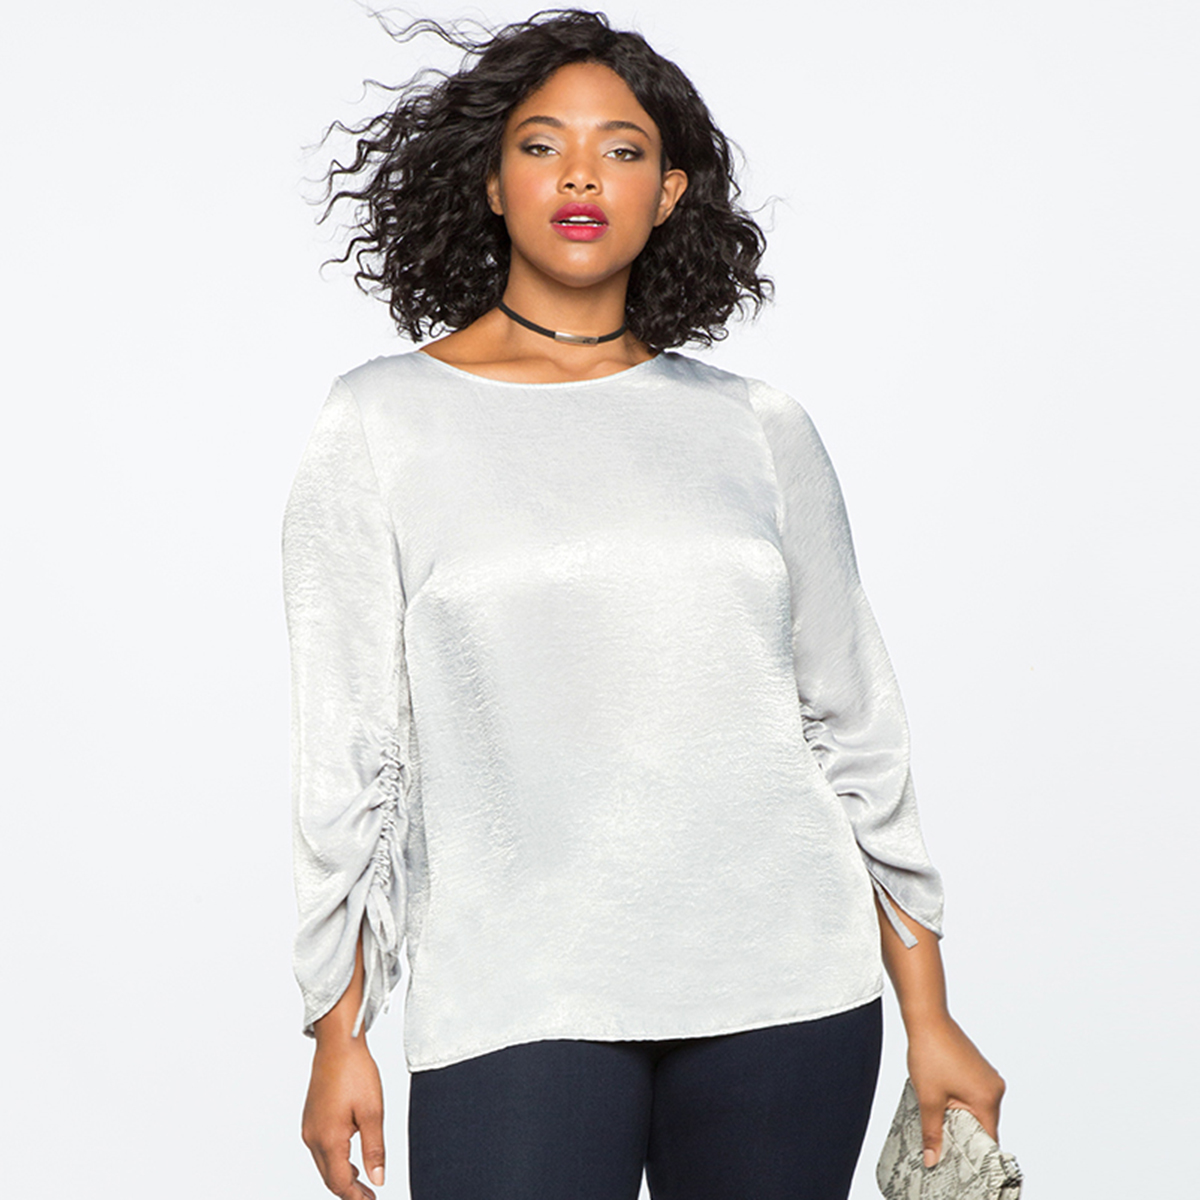 MCO 2018 Spring Lace Up Long Sleeves Plus Size Satin Women's Top Simple Office Ladies White Blouse Basic Big Women Tops 5xl 6xl 2